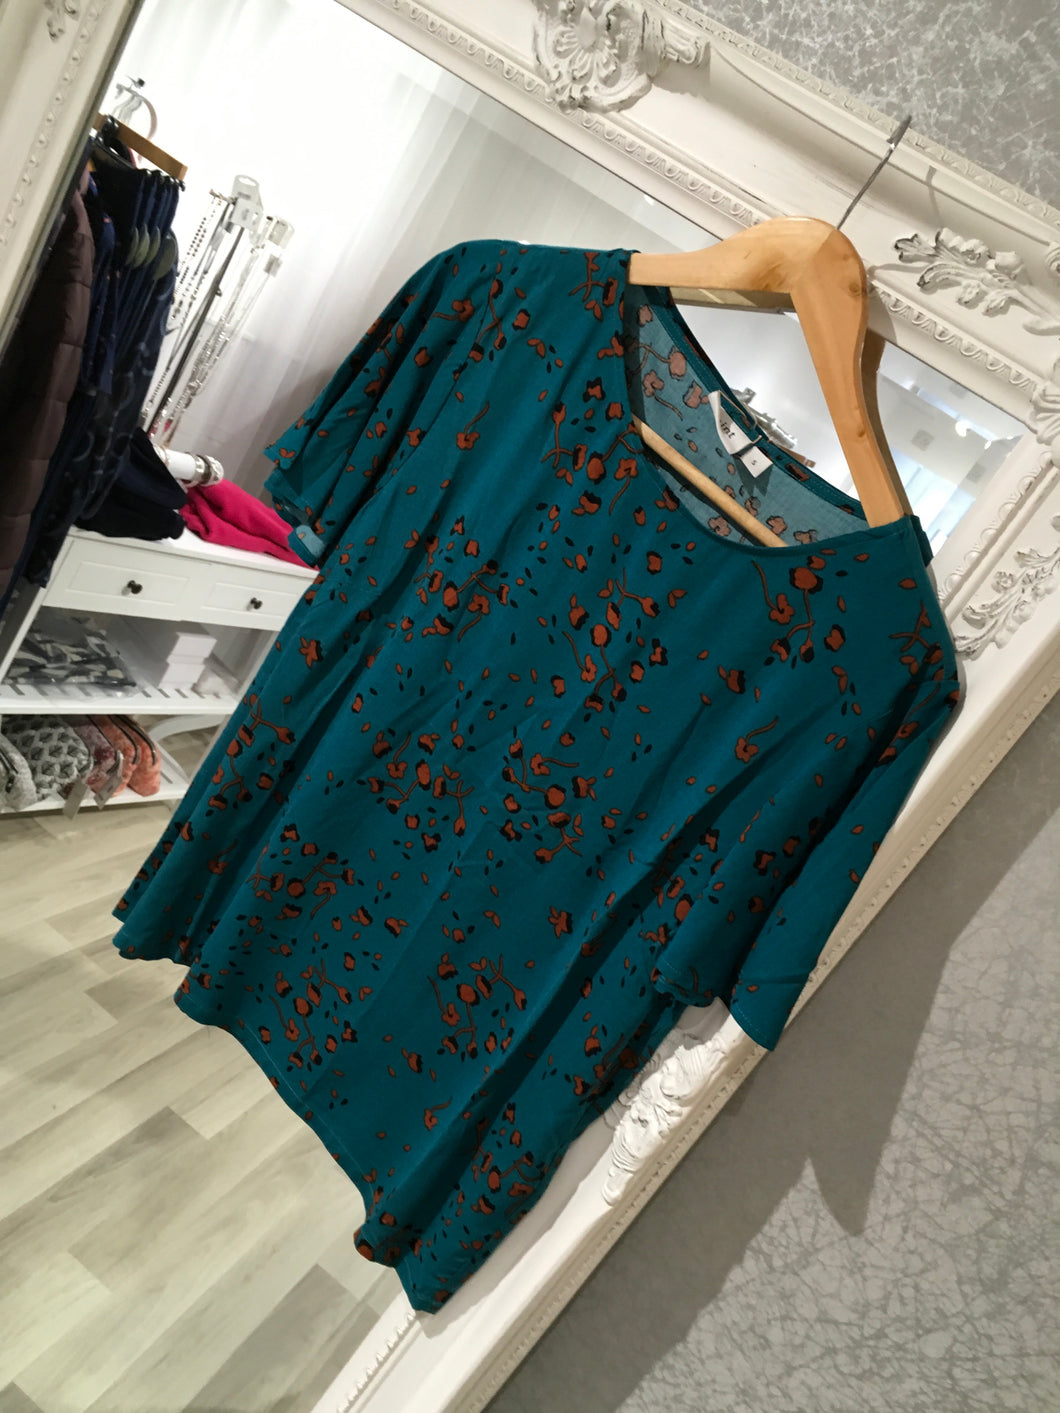 Saint Tropez Teal Patterned Blouse